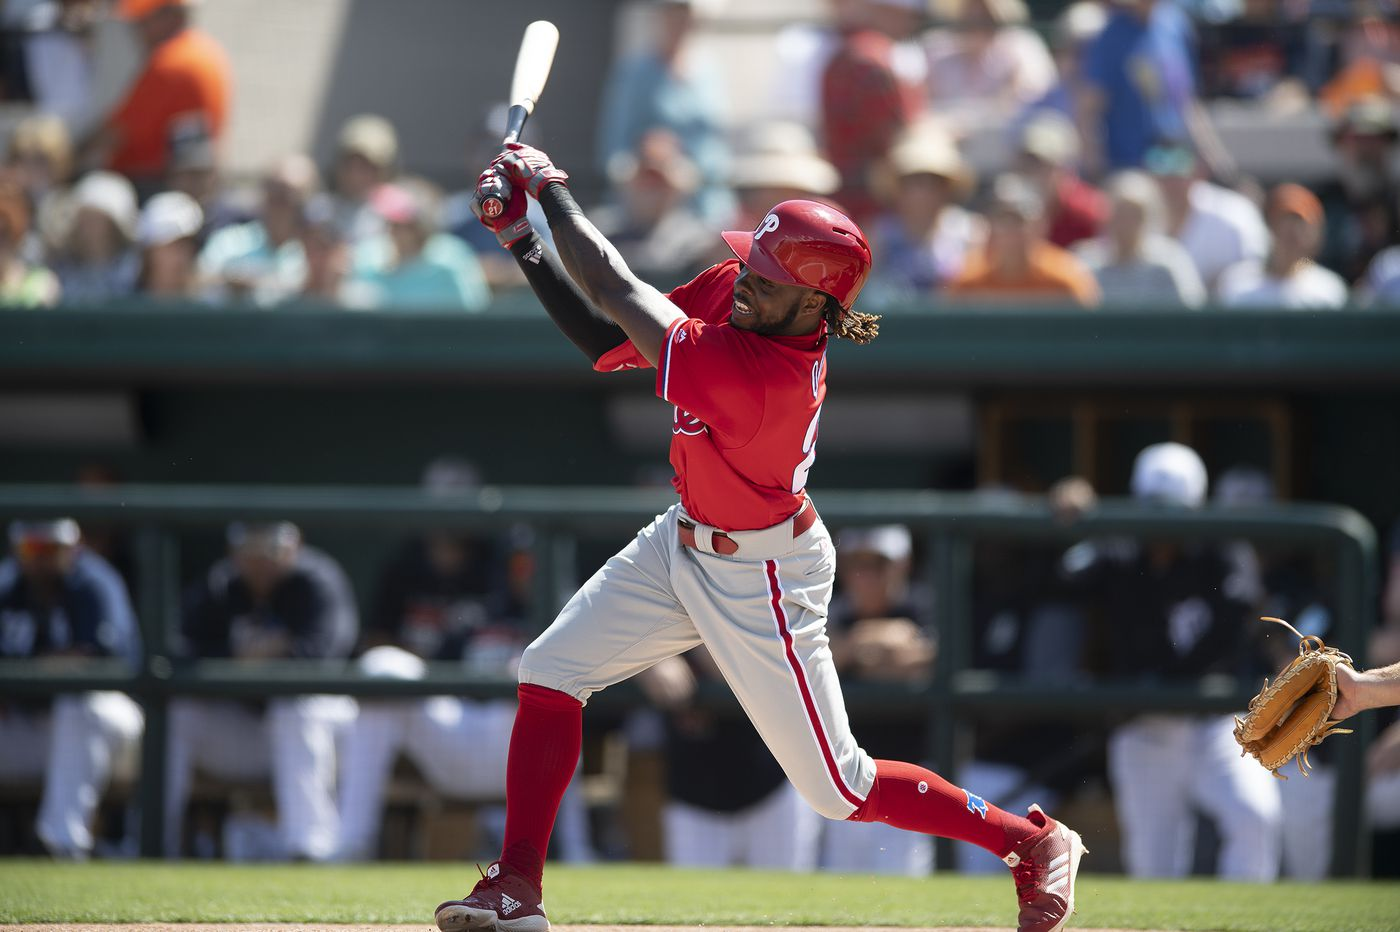 Phillies' Roman Quinn feels some discomfort after getting hit by a pitch in a rehab game